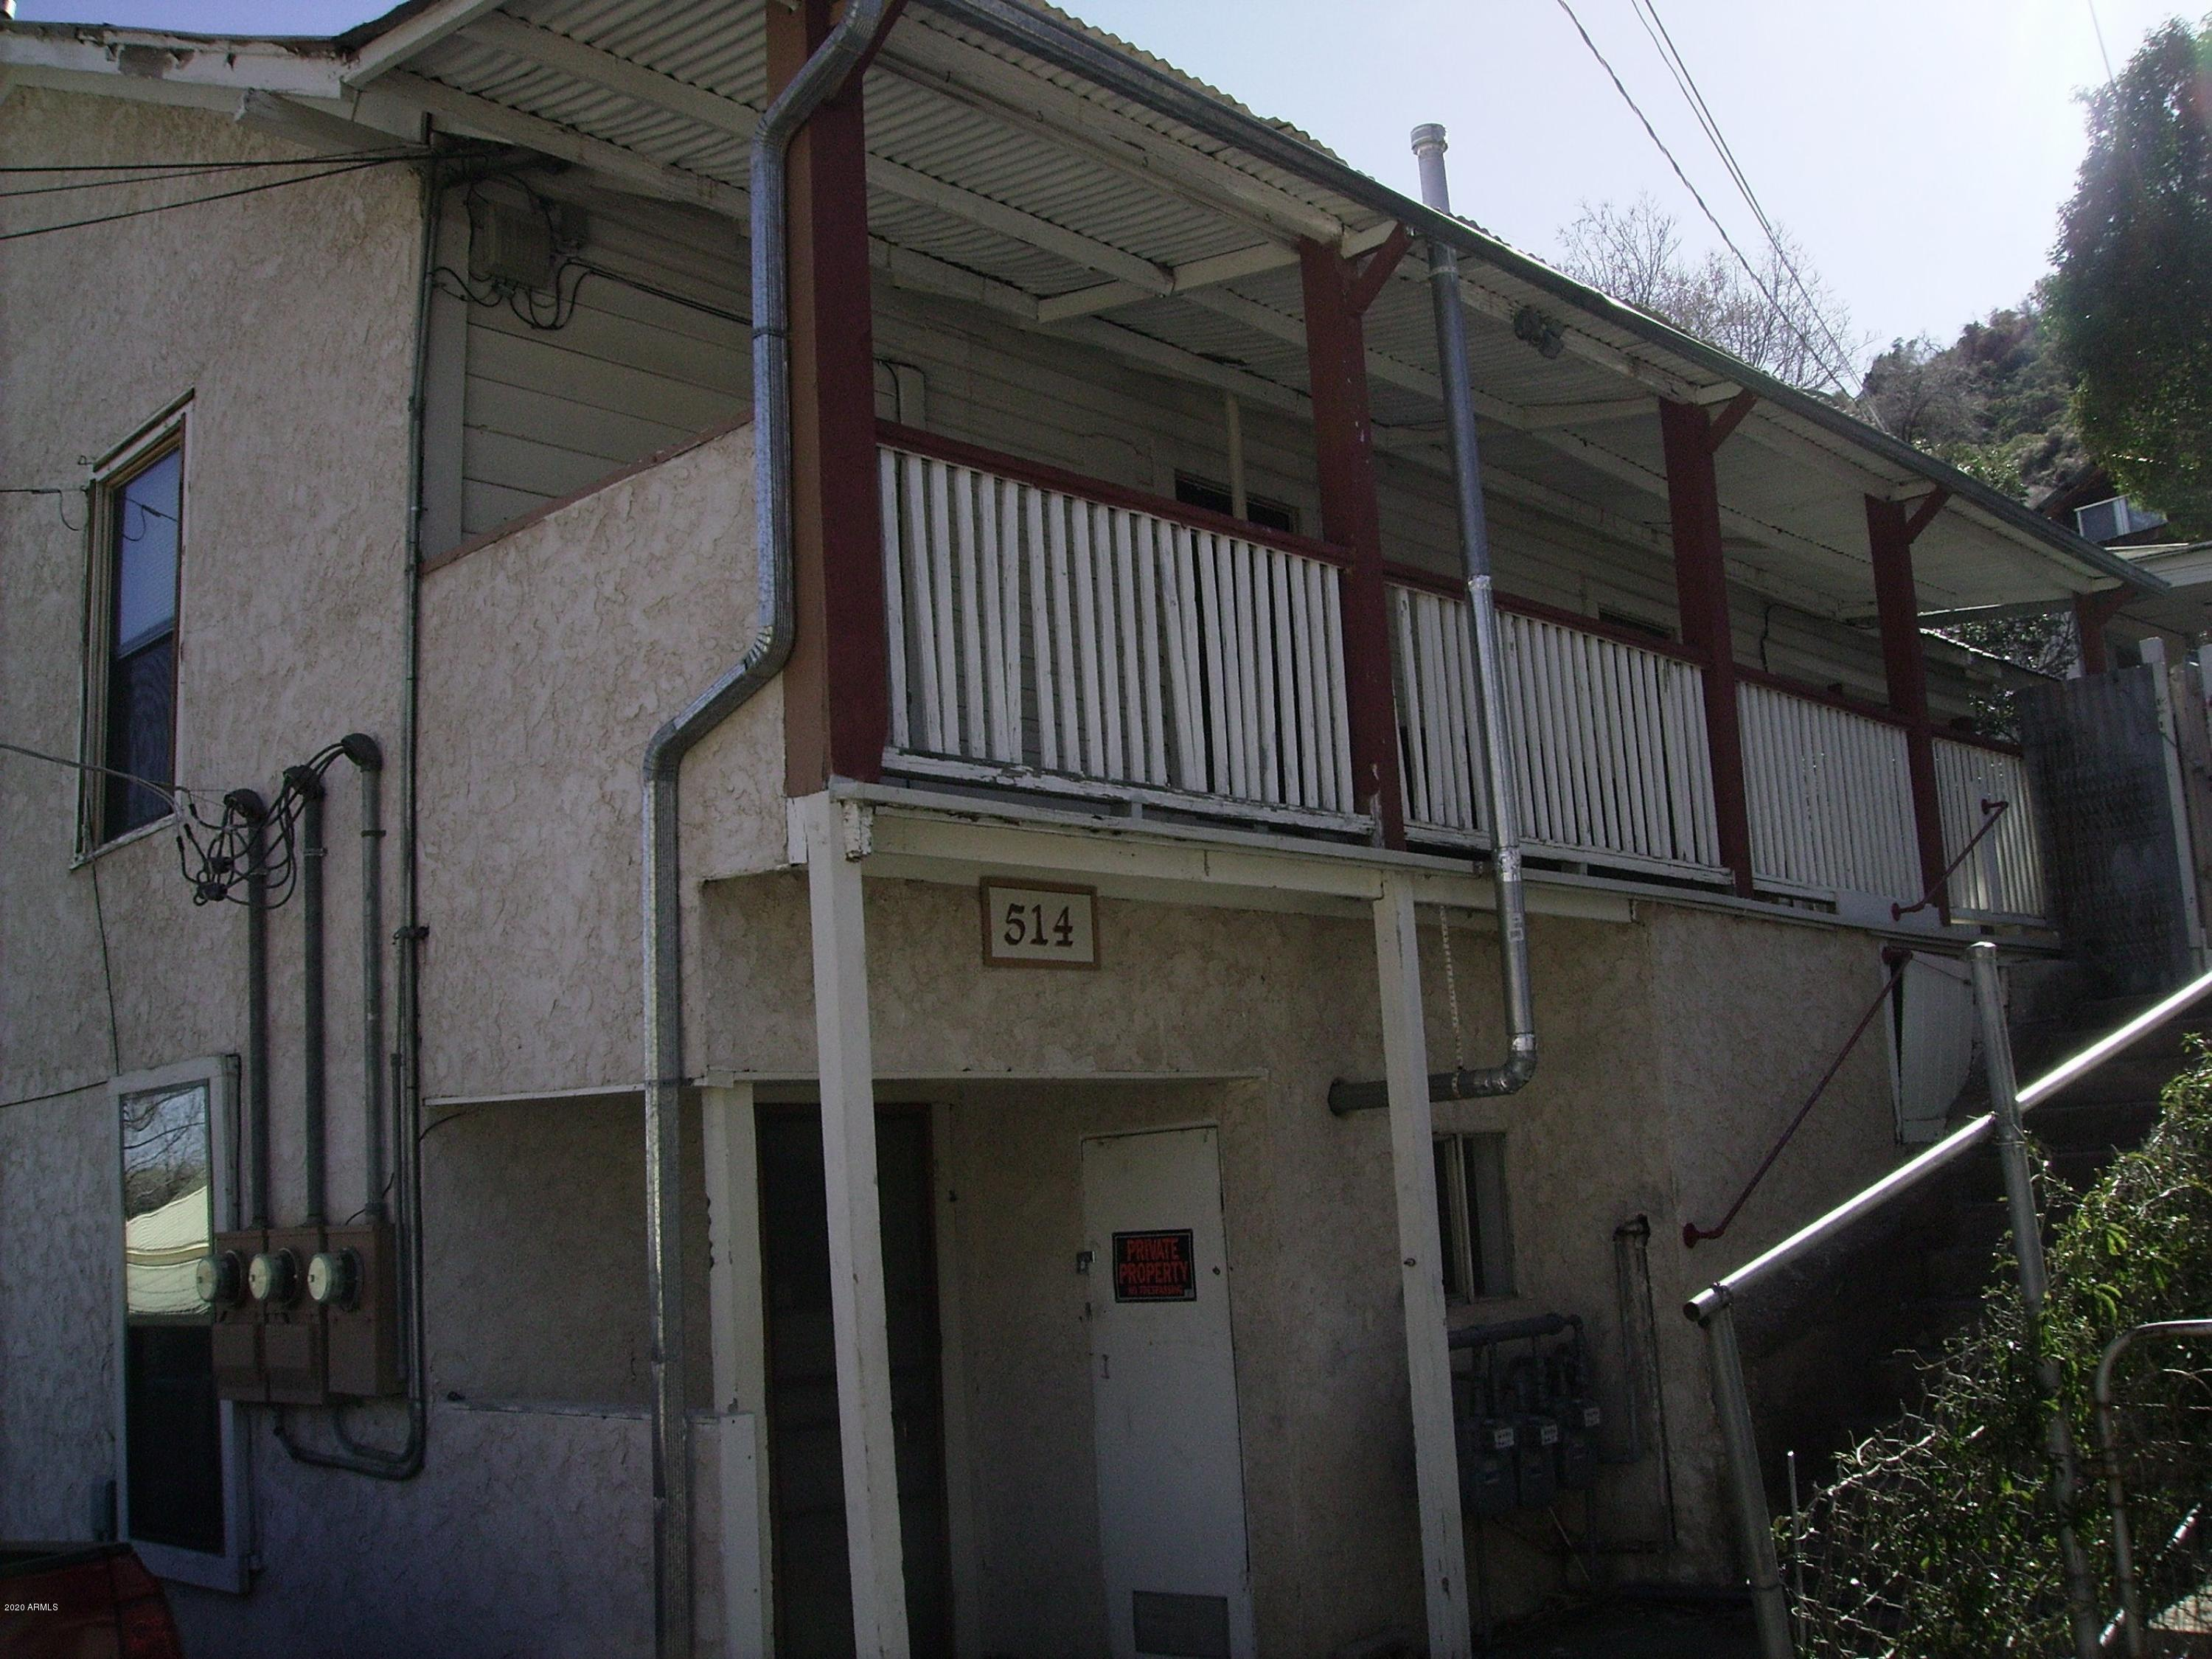 514 BROPHY Avenue, Bisbee, Arizona 85603, ,Multifamily,For Sale,514 BROPHY Avenue,6136298